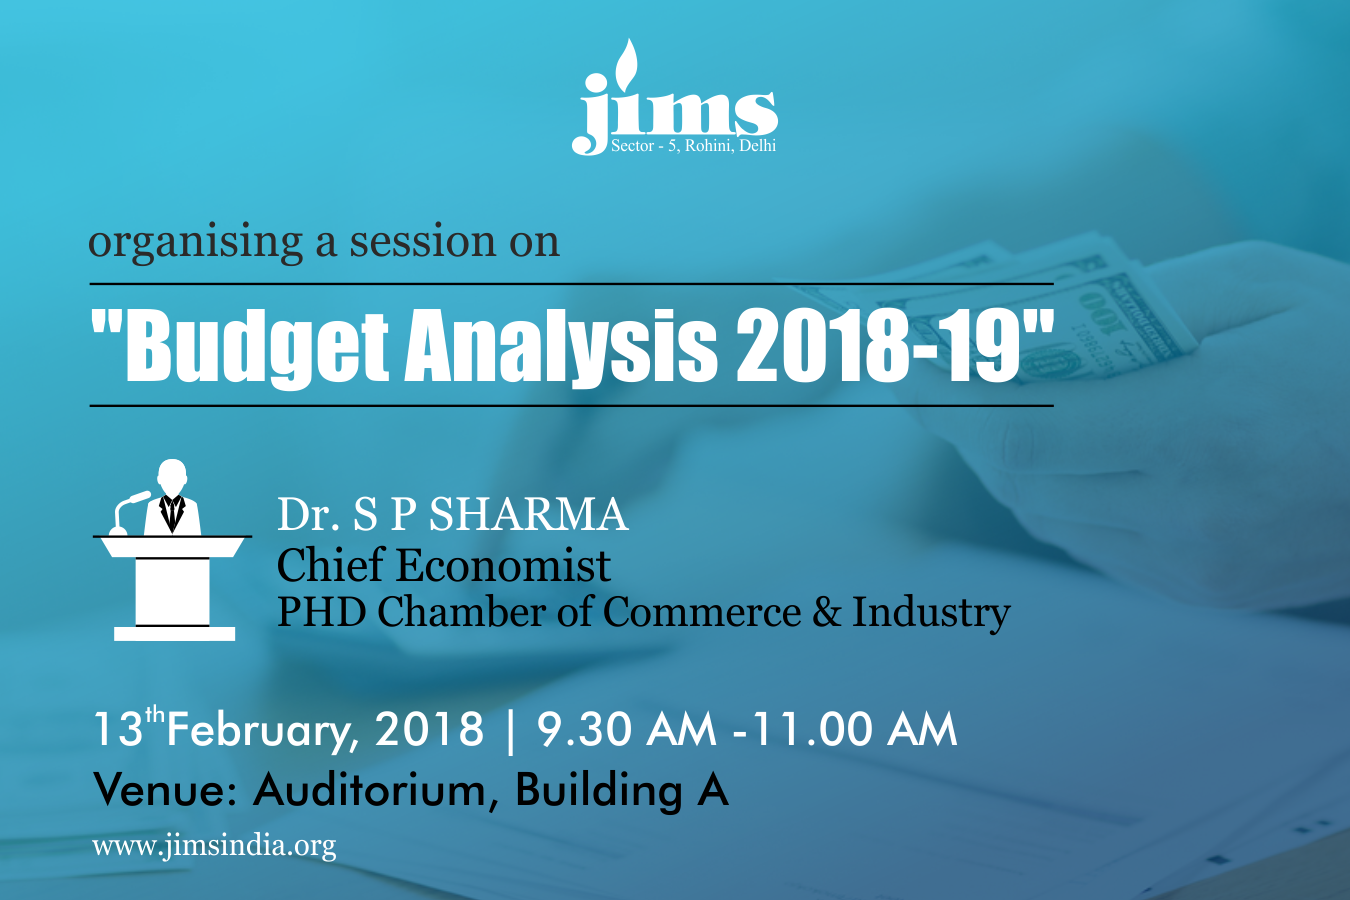 A Session on Budget Analysis 2018-19 at JIMS Rohini